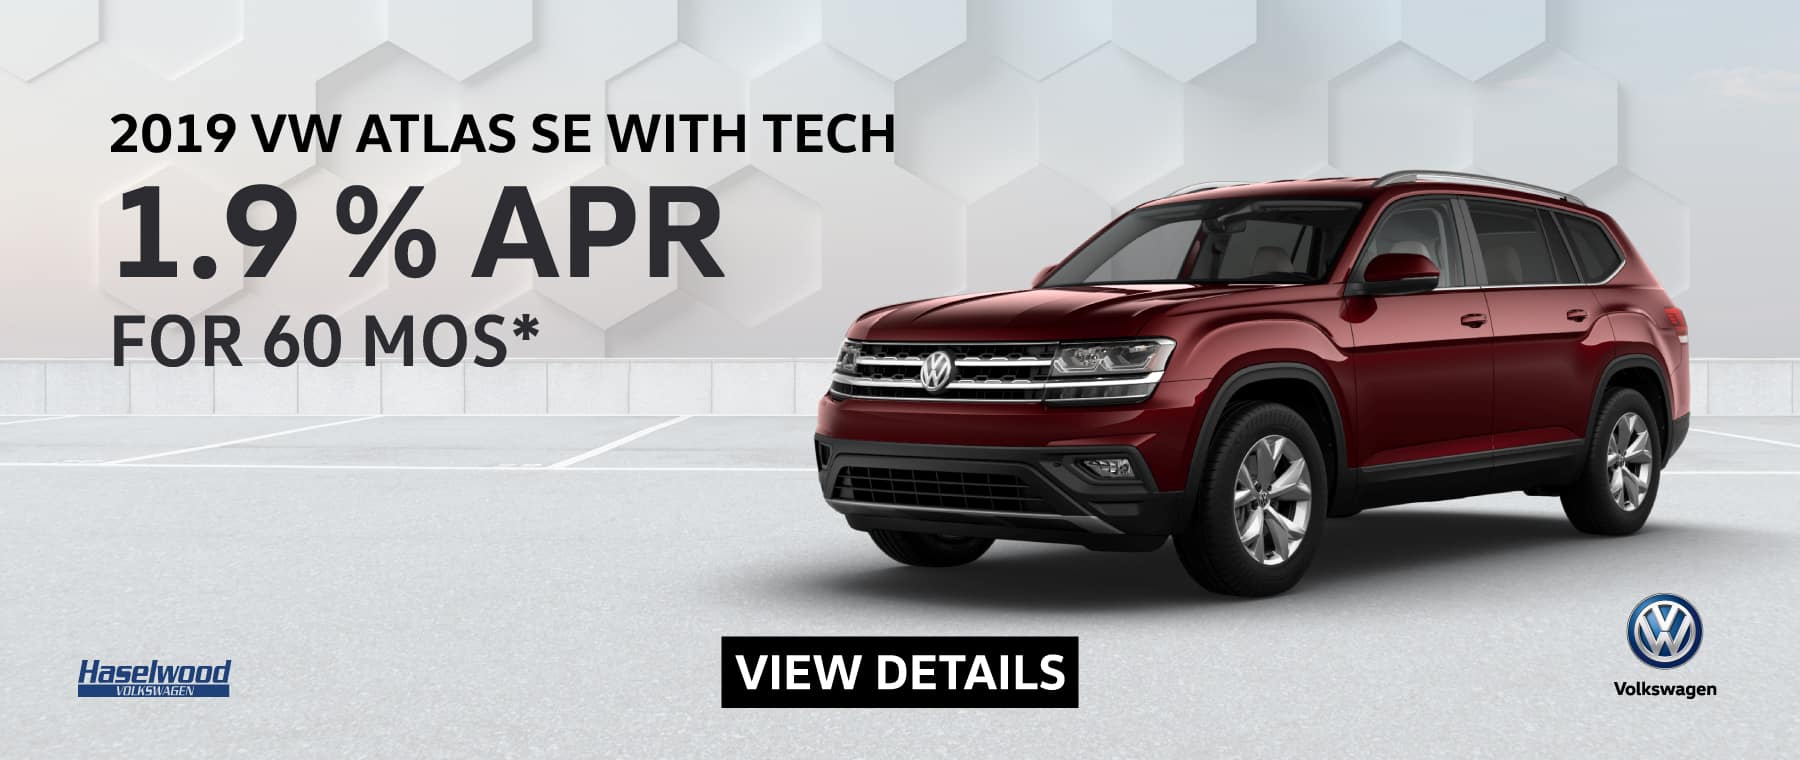 2019 Volkswagen Atlas SE W/Technology 1.9% APR for 60 mos.    * Offer valid on 2019 Volkswagen Atlas SE W/Technology. 1.9% APR for 60 mos. MSRP $42,505.  Valid on Vin: 1V2UR2CA5KC519939. No down payment required; includes a $595 acquisition fee, financed through Volkswagen Credit. No security deposit required. For highly qualified customers on approved top tier credit through Volkswagen Credit. Subject to credit approval. 60 monthly payments required. A negotiable dealer documentary service fee of up to $150 may be added to the sale price or capitalized cost. See dealer for complete details and restrictions. 6 years/72,000 miles (whichever occurs first). New Vehicle Limited Warranty on MY2019 and newer VW vehicles, excluding e-Golf. See owner's literature or dealer for warranty exclusions and limitations. Exp. 6/30/2019.